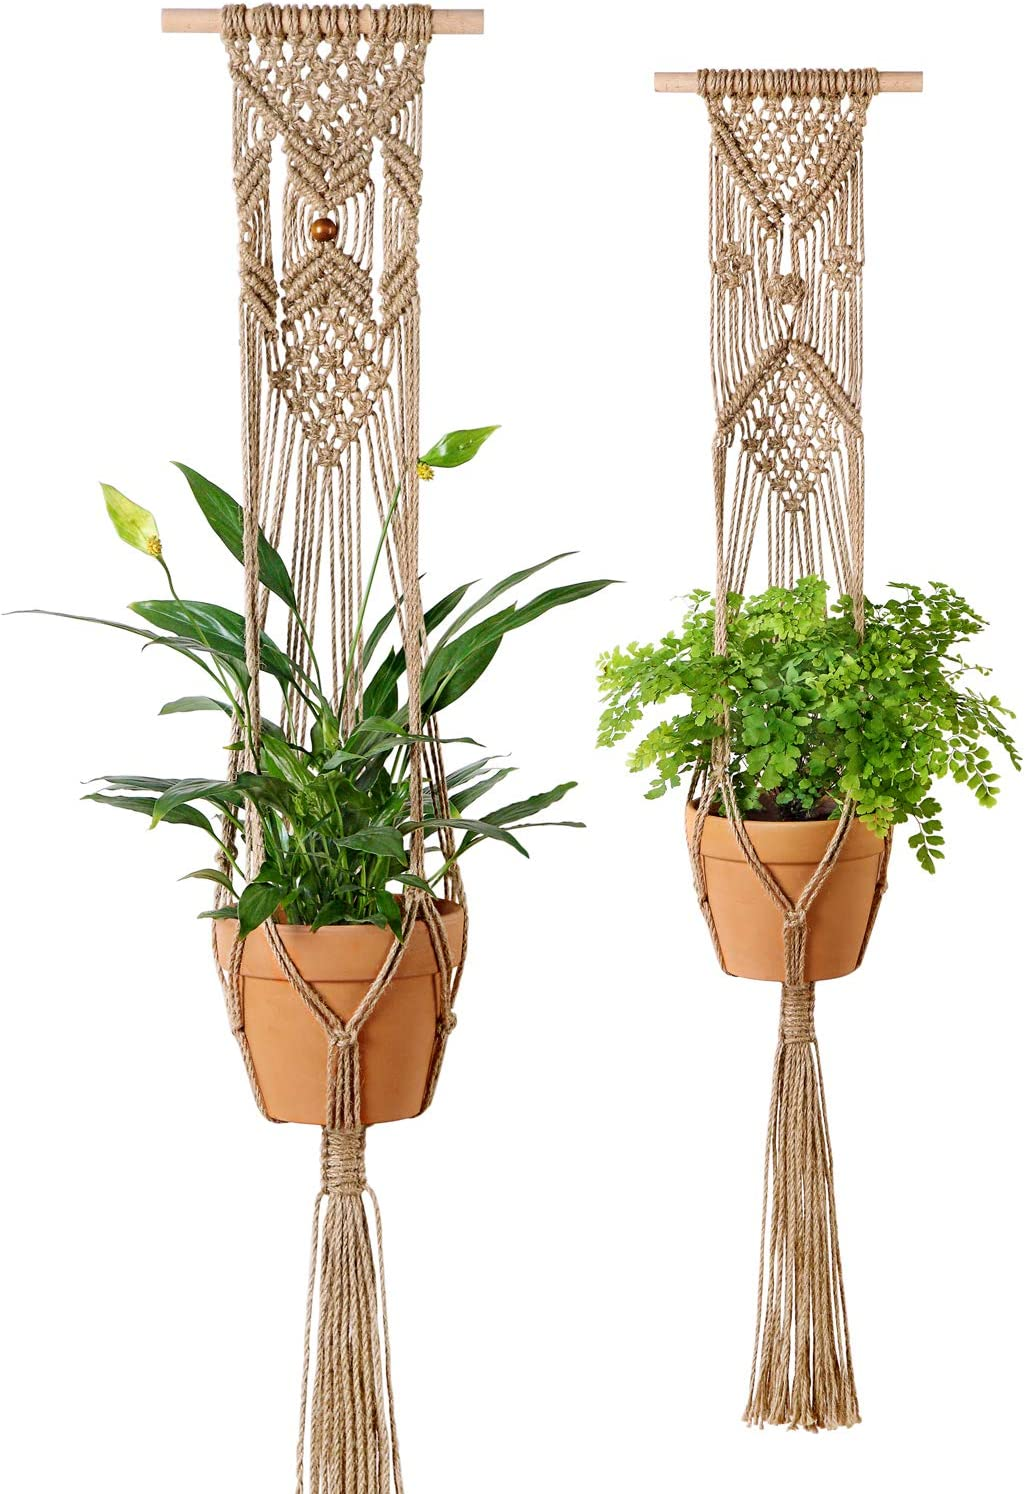 Mkono Plant Hangers Indoor Wall Hanging Planter Basket Macrame Jute Rope Boho Hippie Home Decor, Set of 2